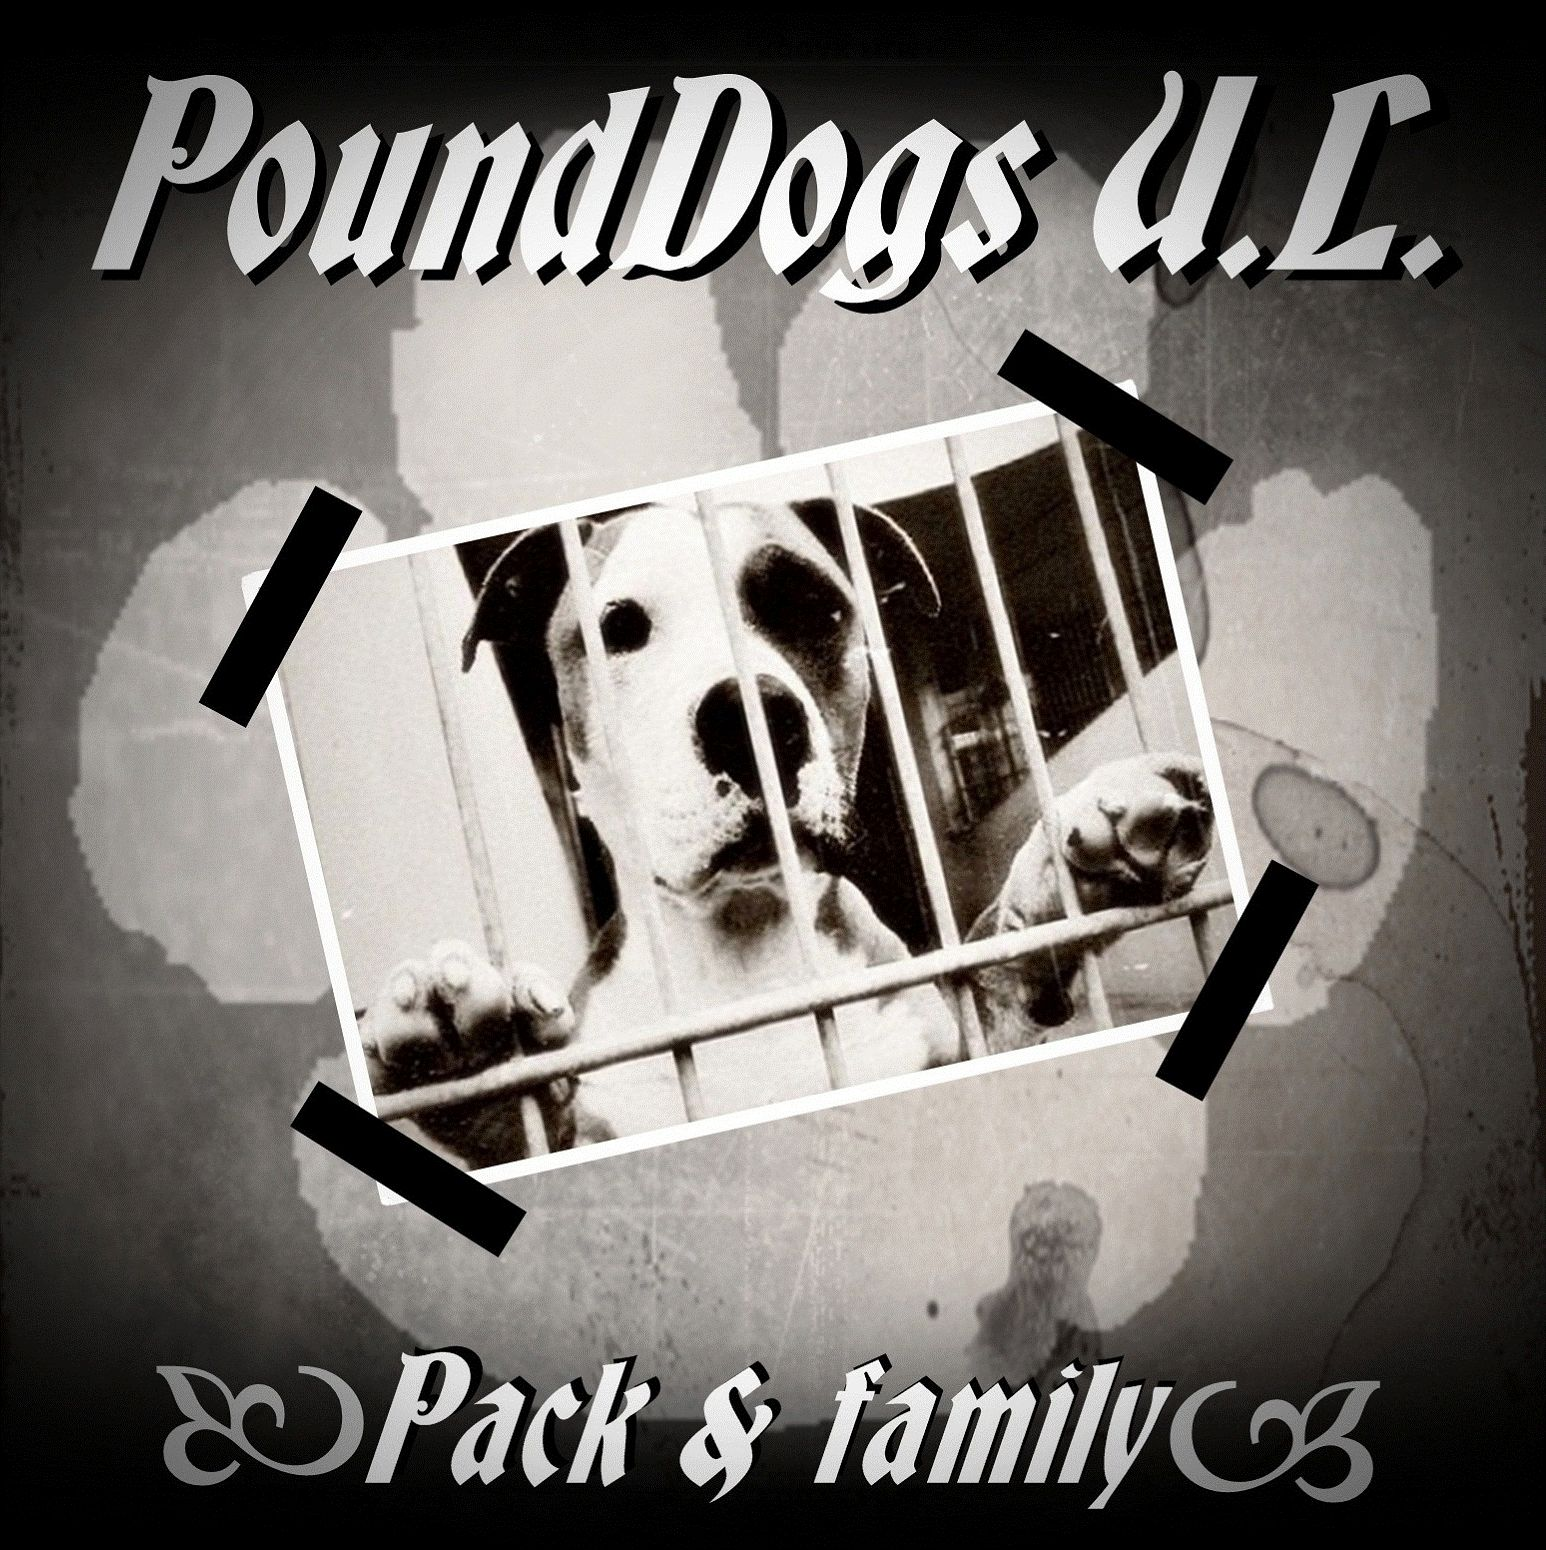 PoundDogs U.L. ? Pack&family MCD